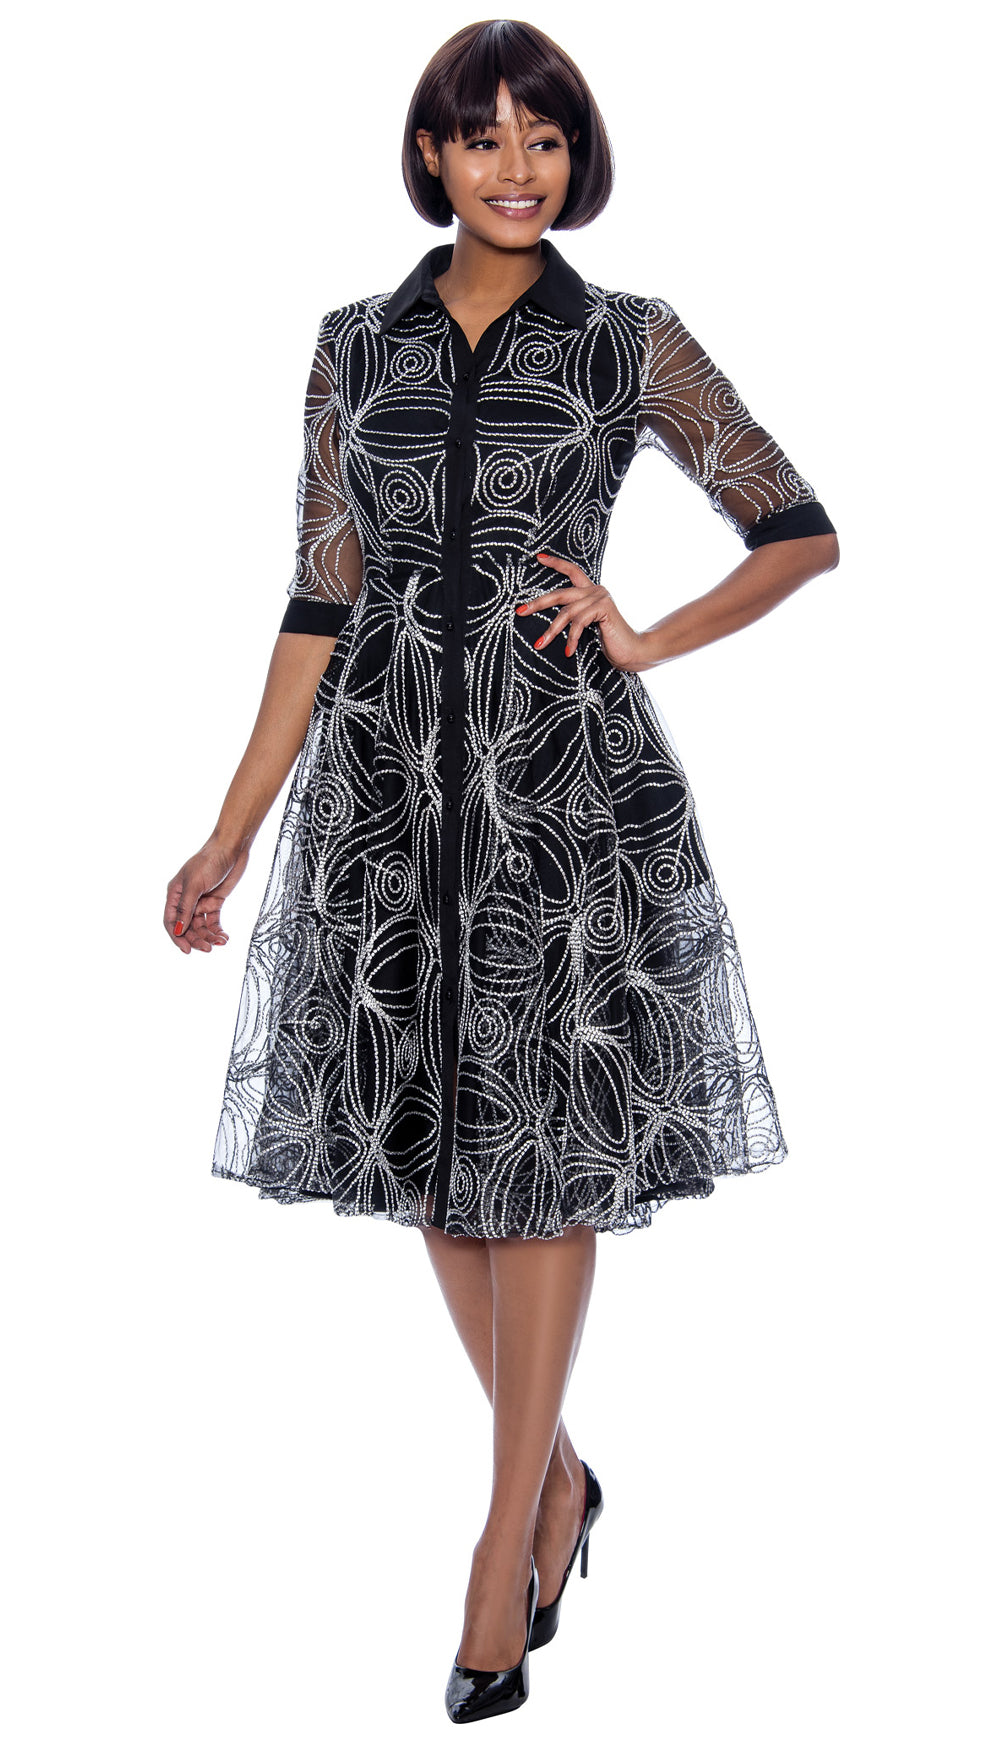 Terramina Dress 7883-Black - Church Suits For Less